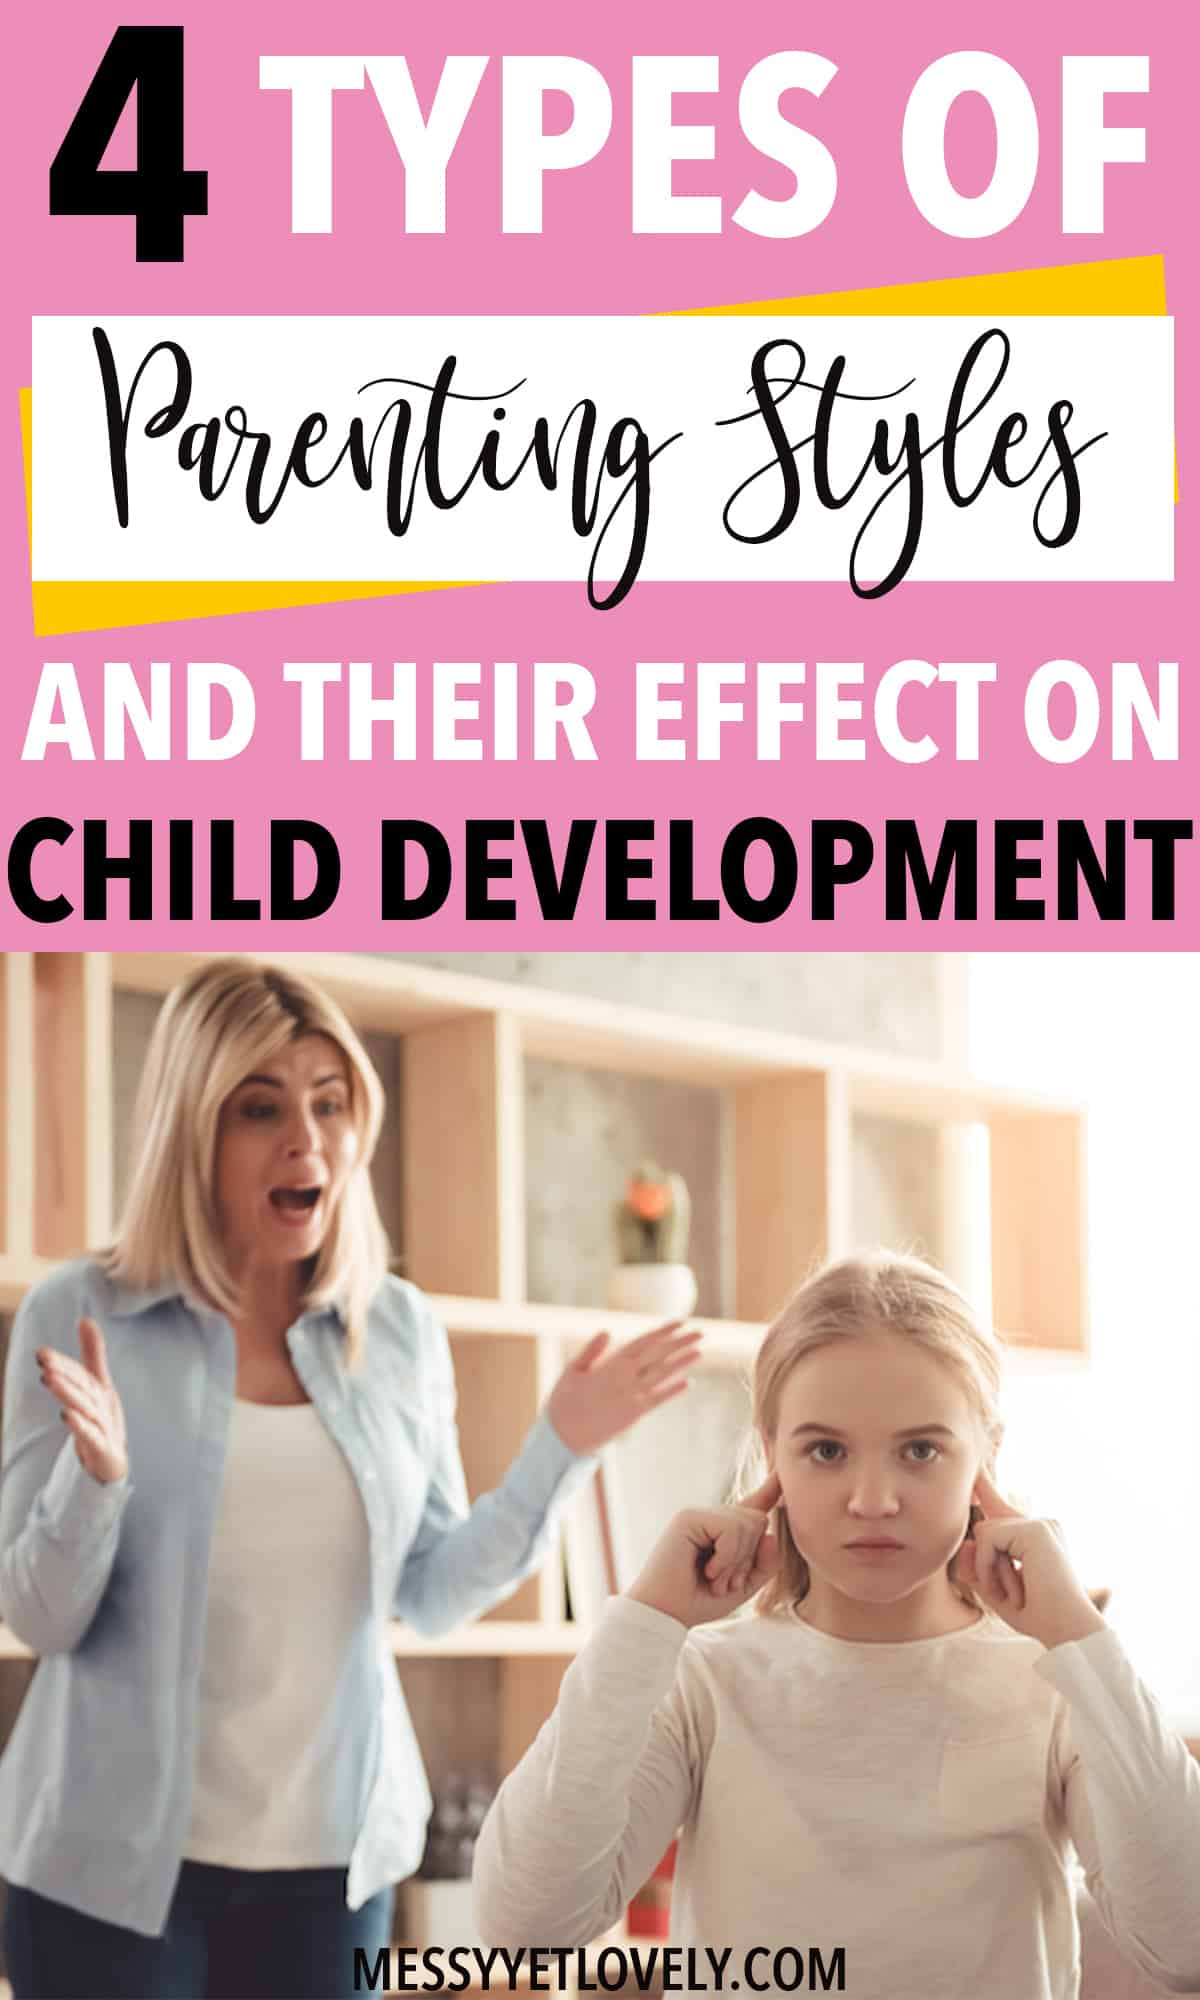 What are the four types of parenting styles? Find out your parenting style and how it affects child development. Also, learn which is the best approach to raise children. #parenting